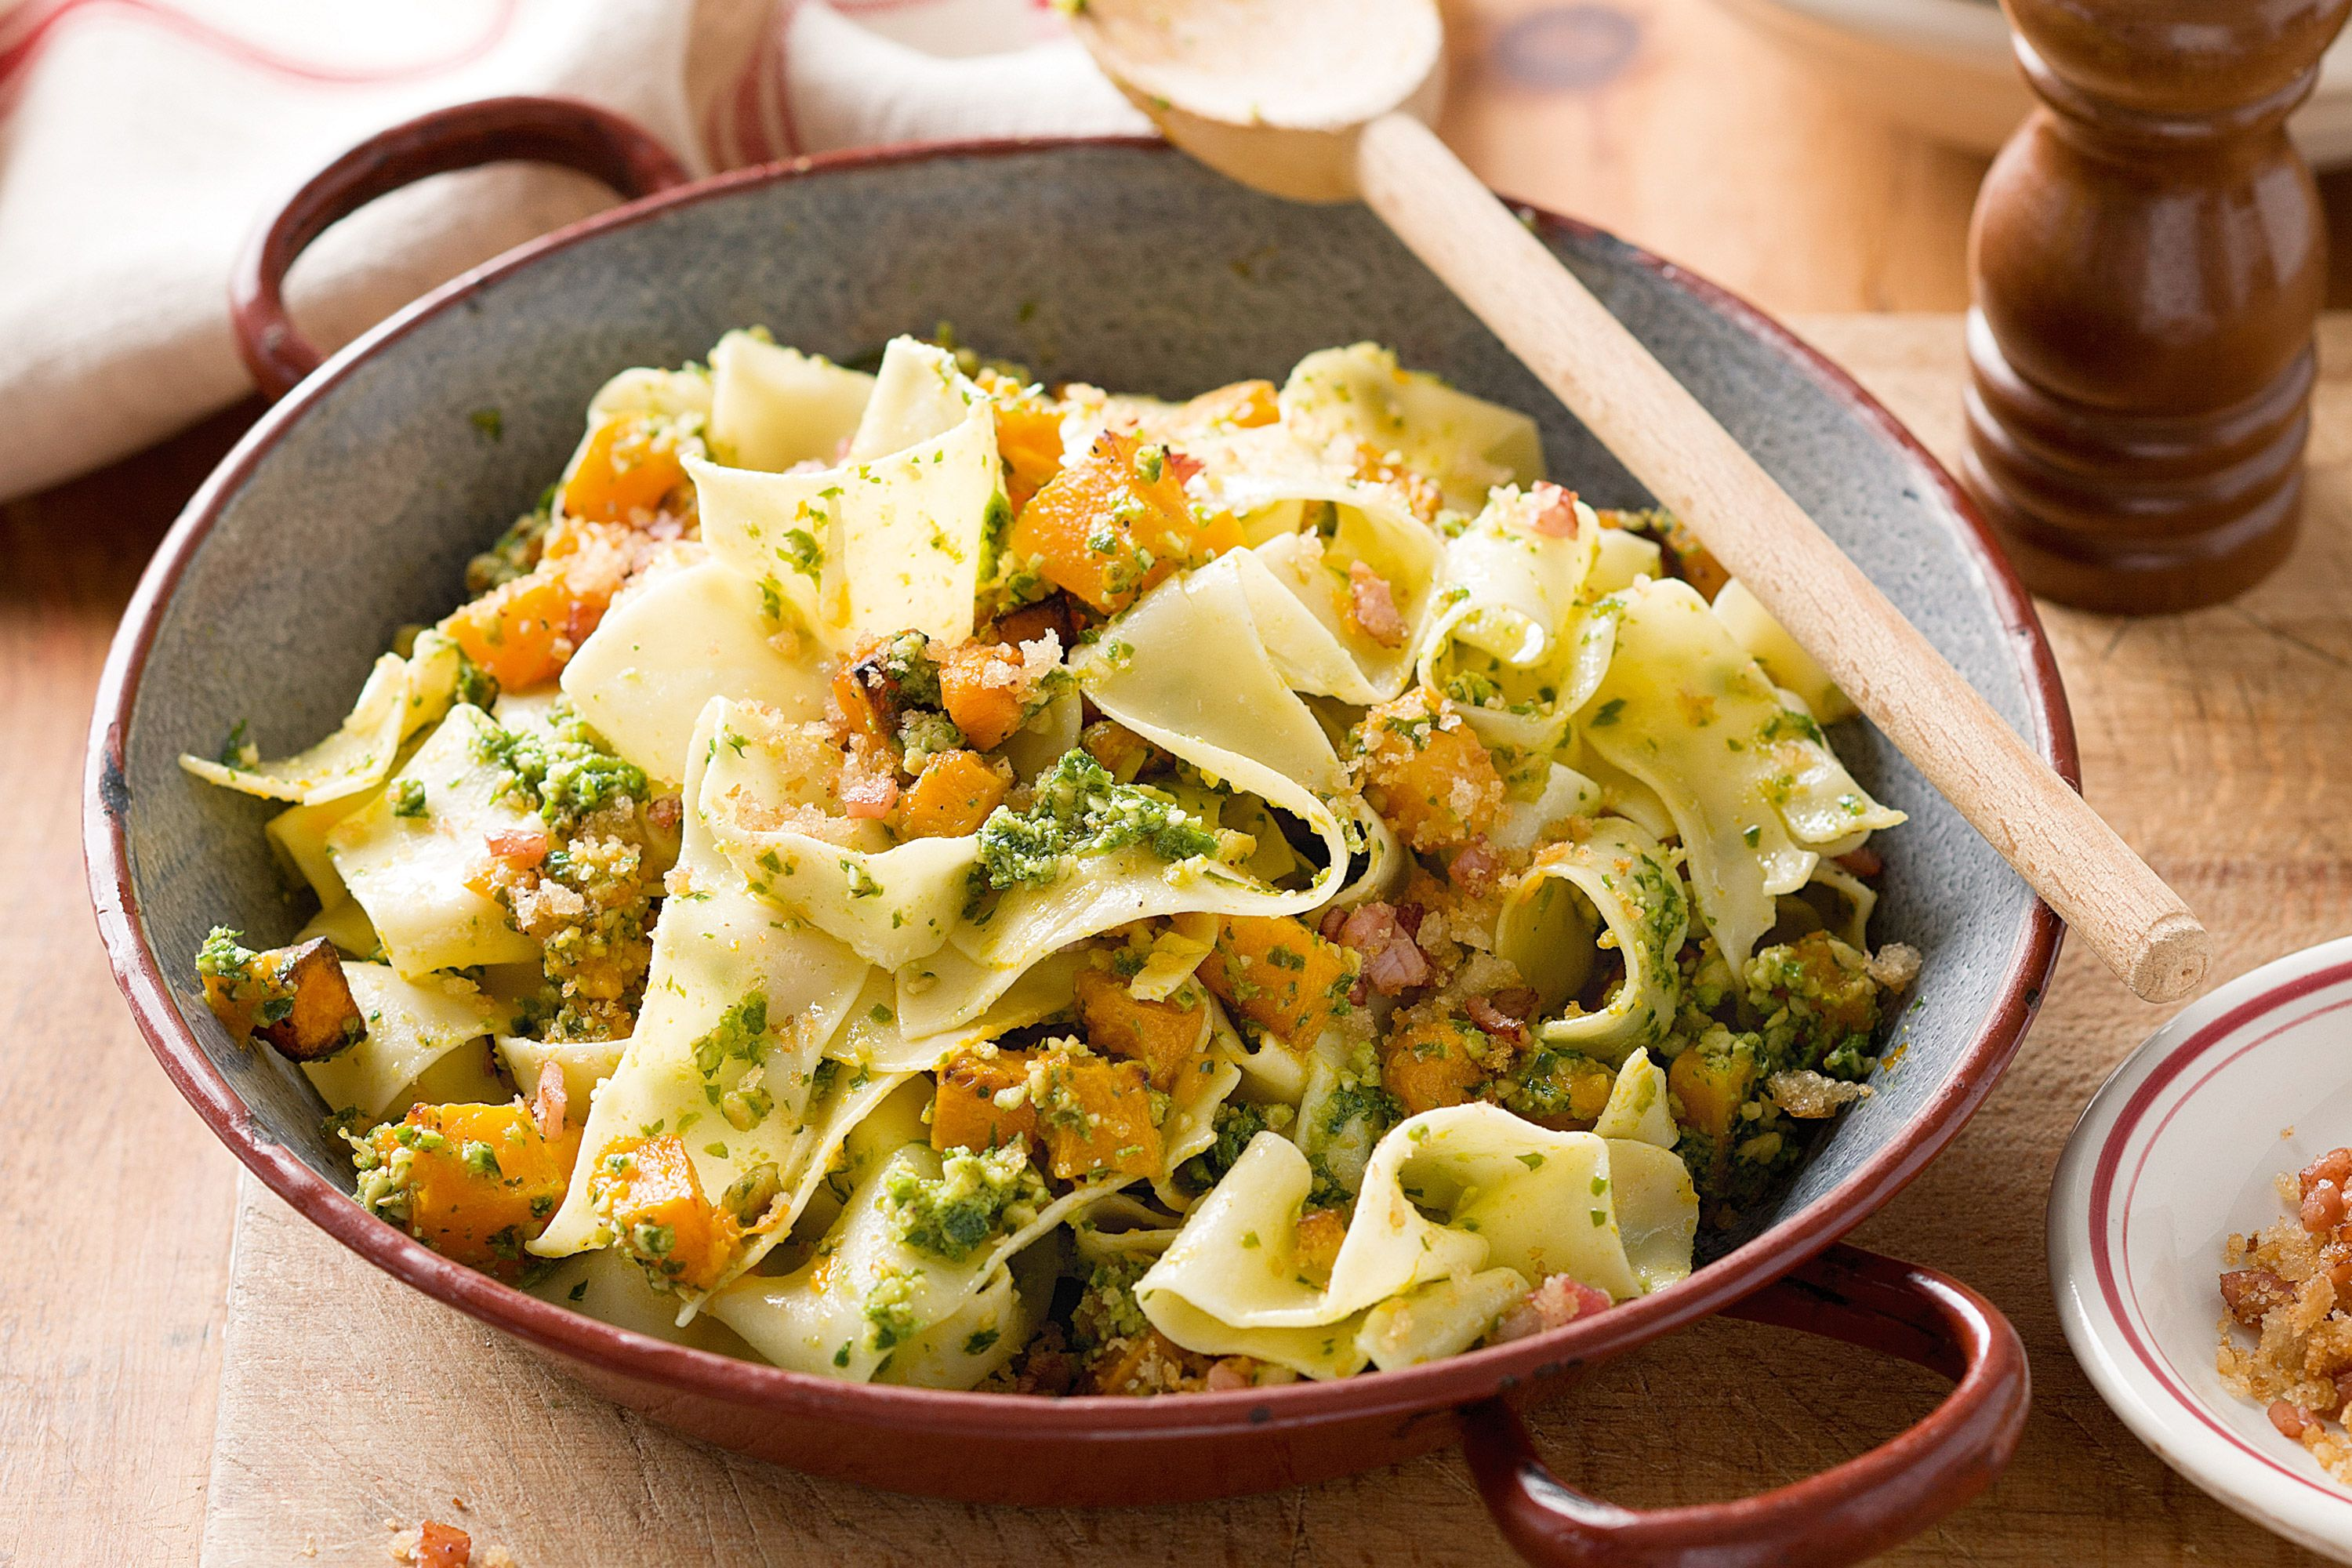 For+added+texture,+serve+this+pappardelle+with+crunchy+breadcrumbs+on+top.